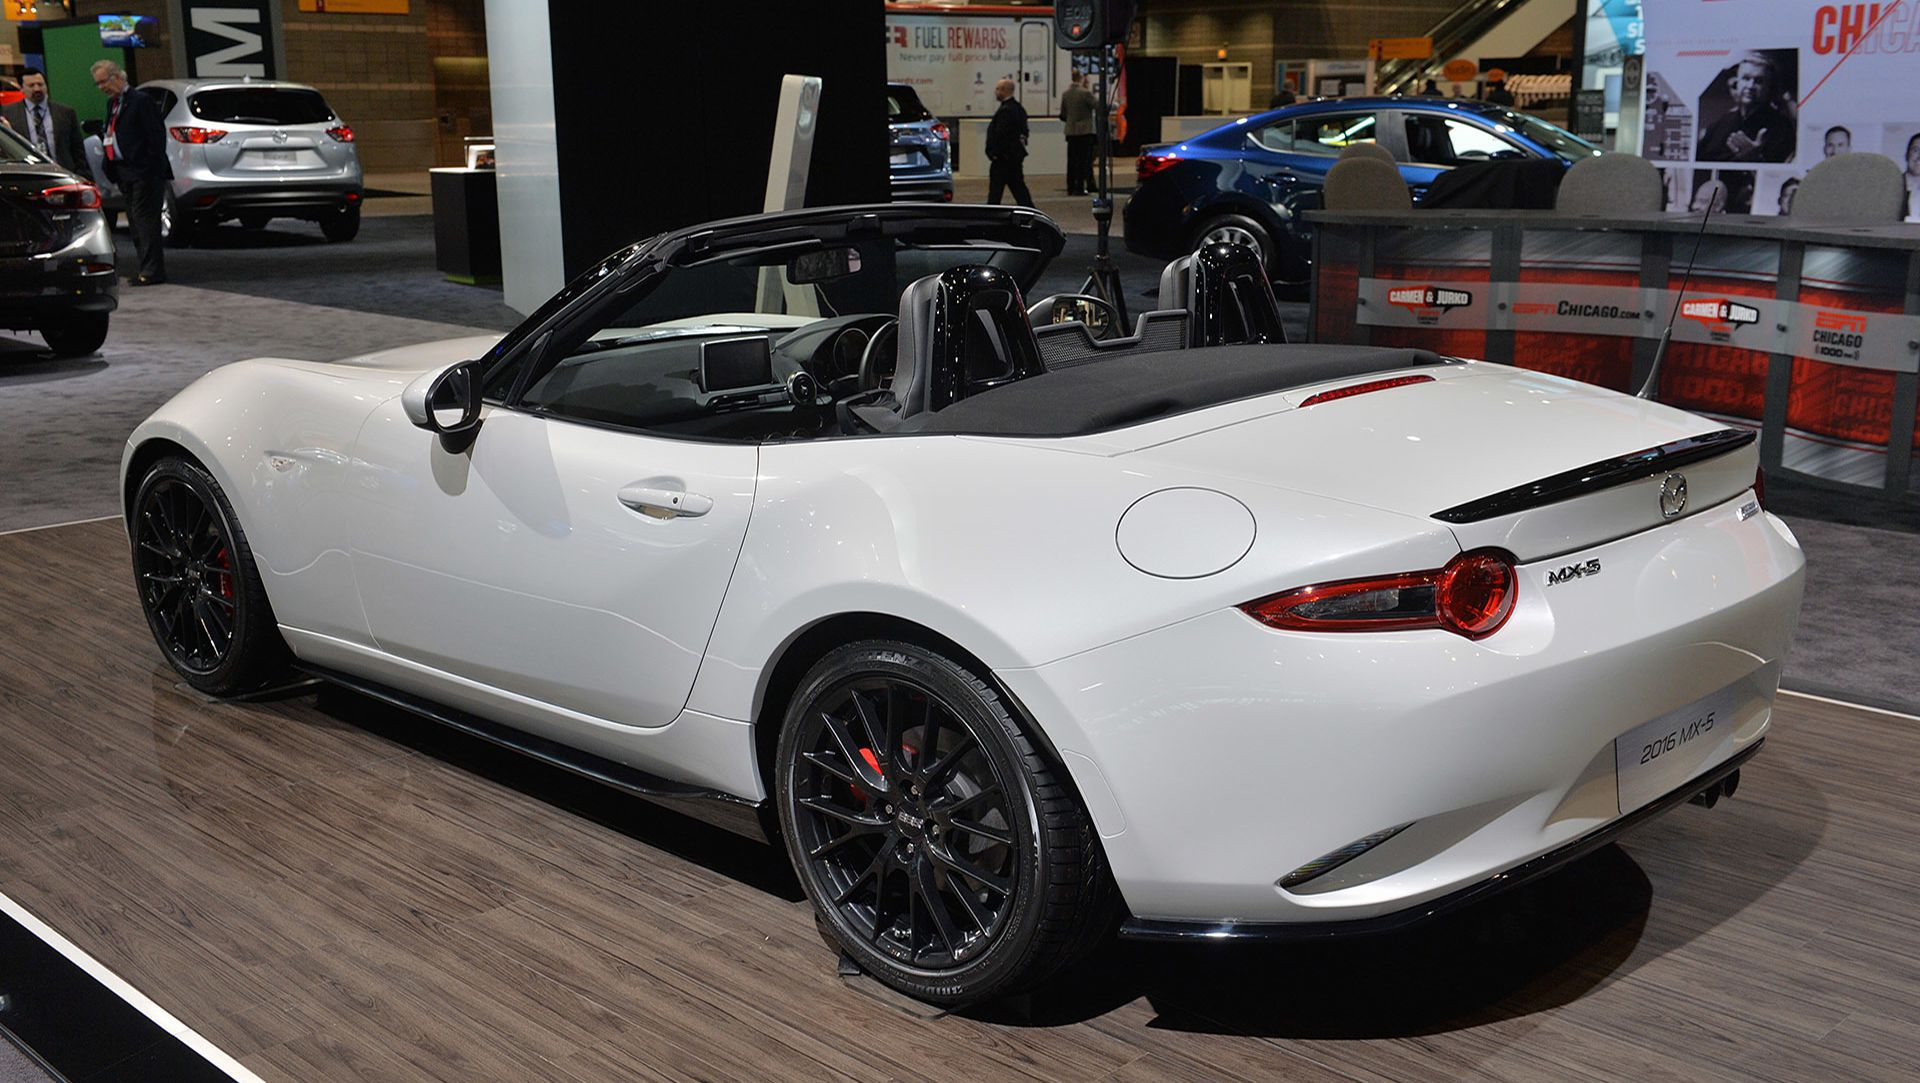 ... 2015 Chicago Auto Show : Mazda Specs New MX 5 Miata With Accessories